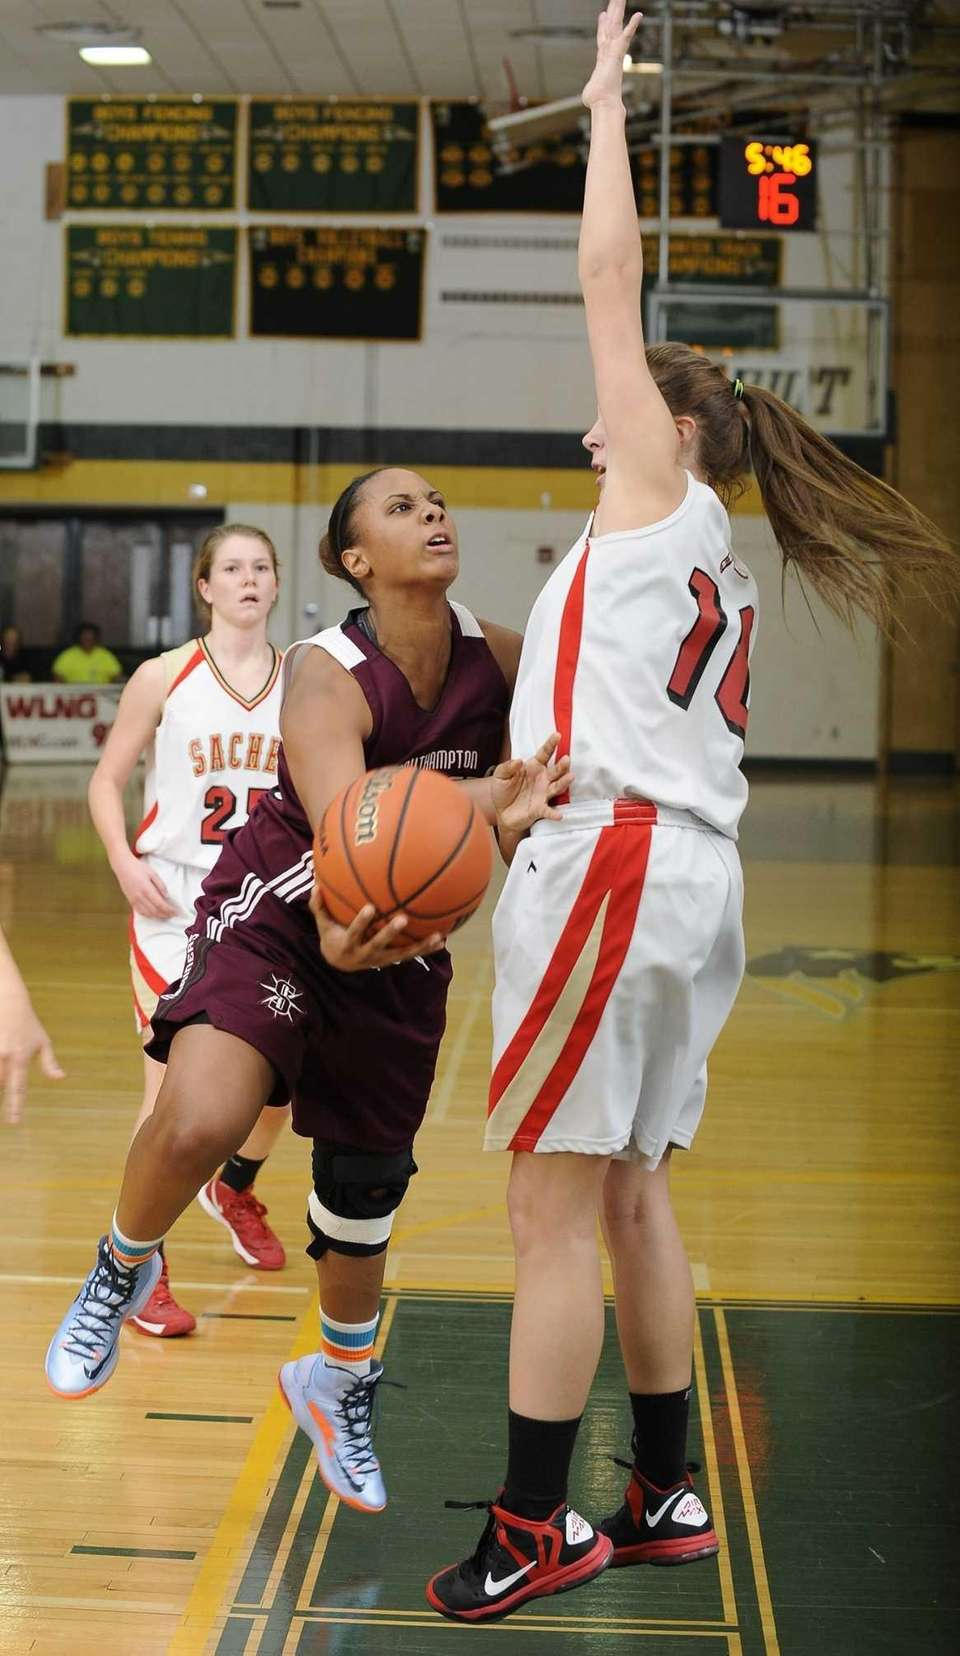 Southampton's Kesi Goree draws a foul against Sachem